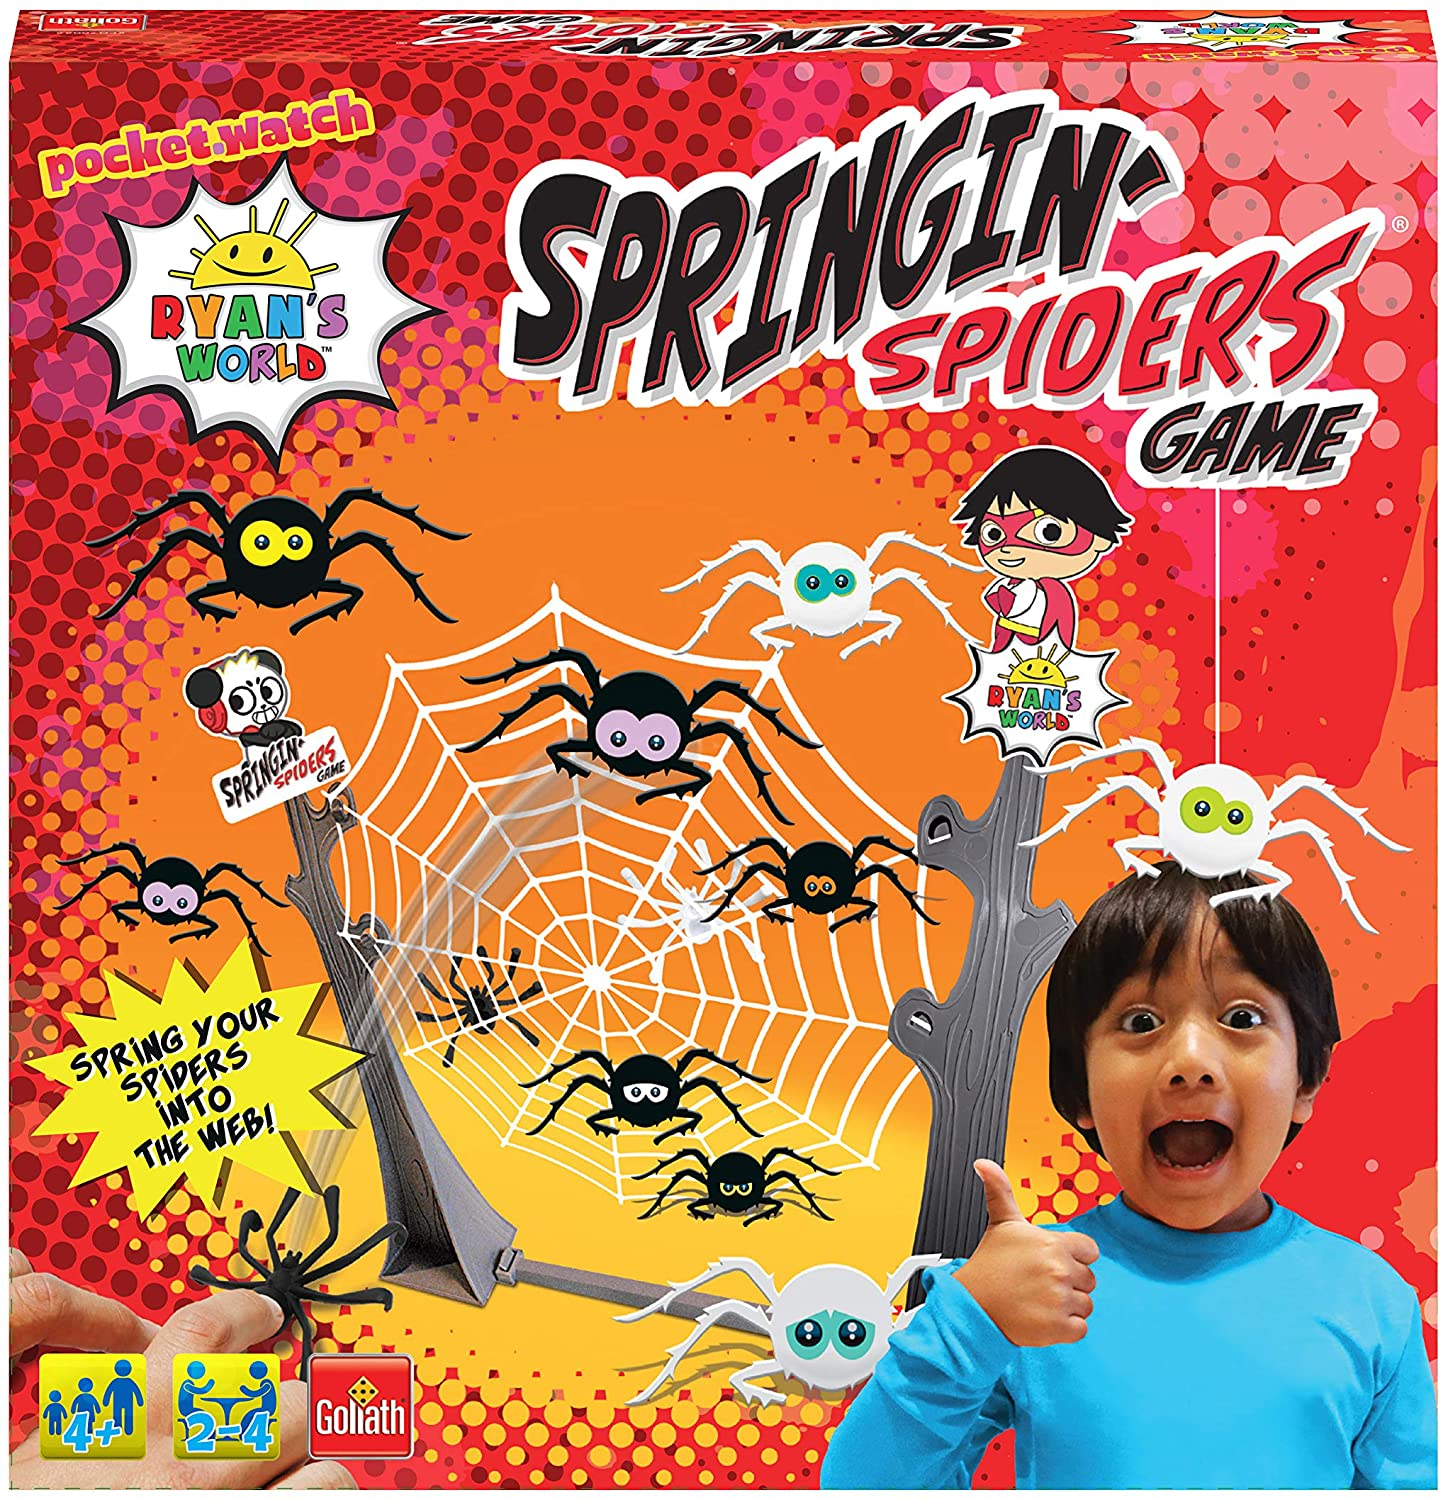 RYAN'S WORLD SPRINGING SPIDERS GAME